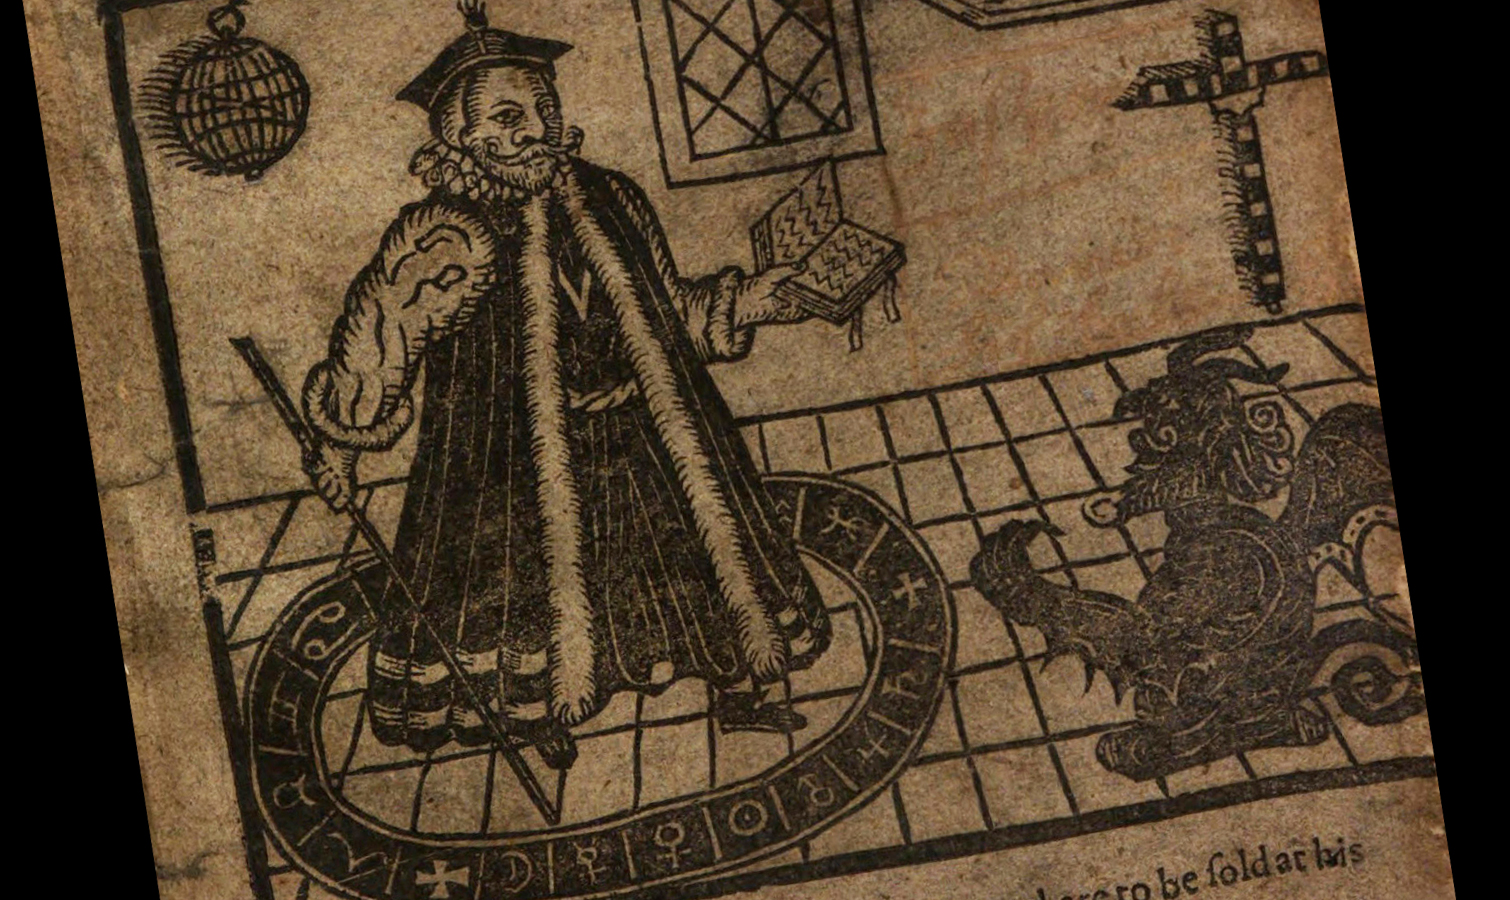 An introduction to Doctor Faustus: ambiguity and duality